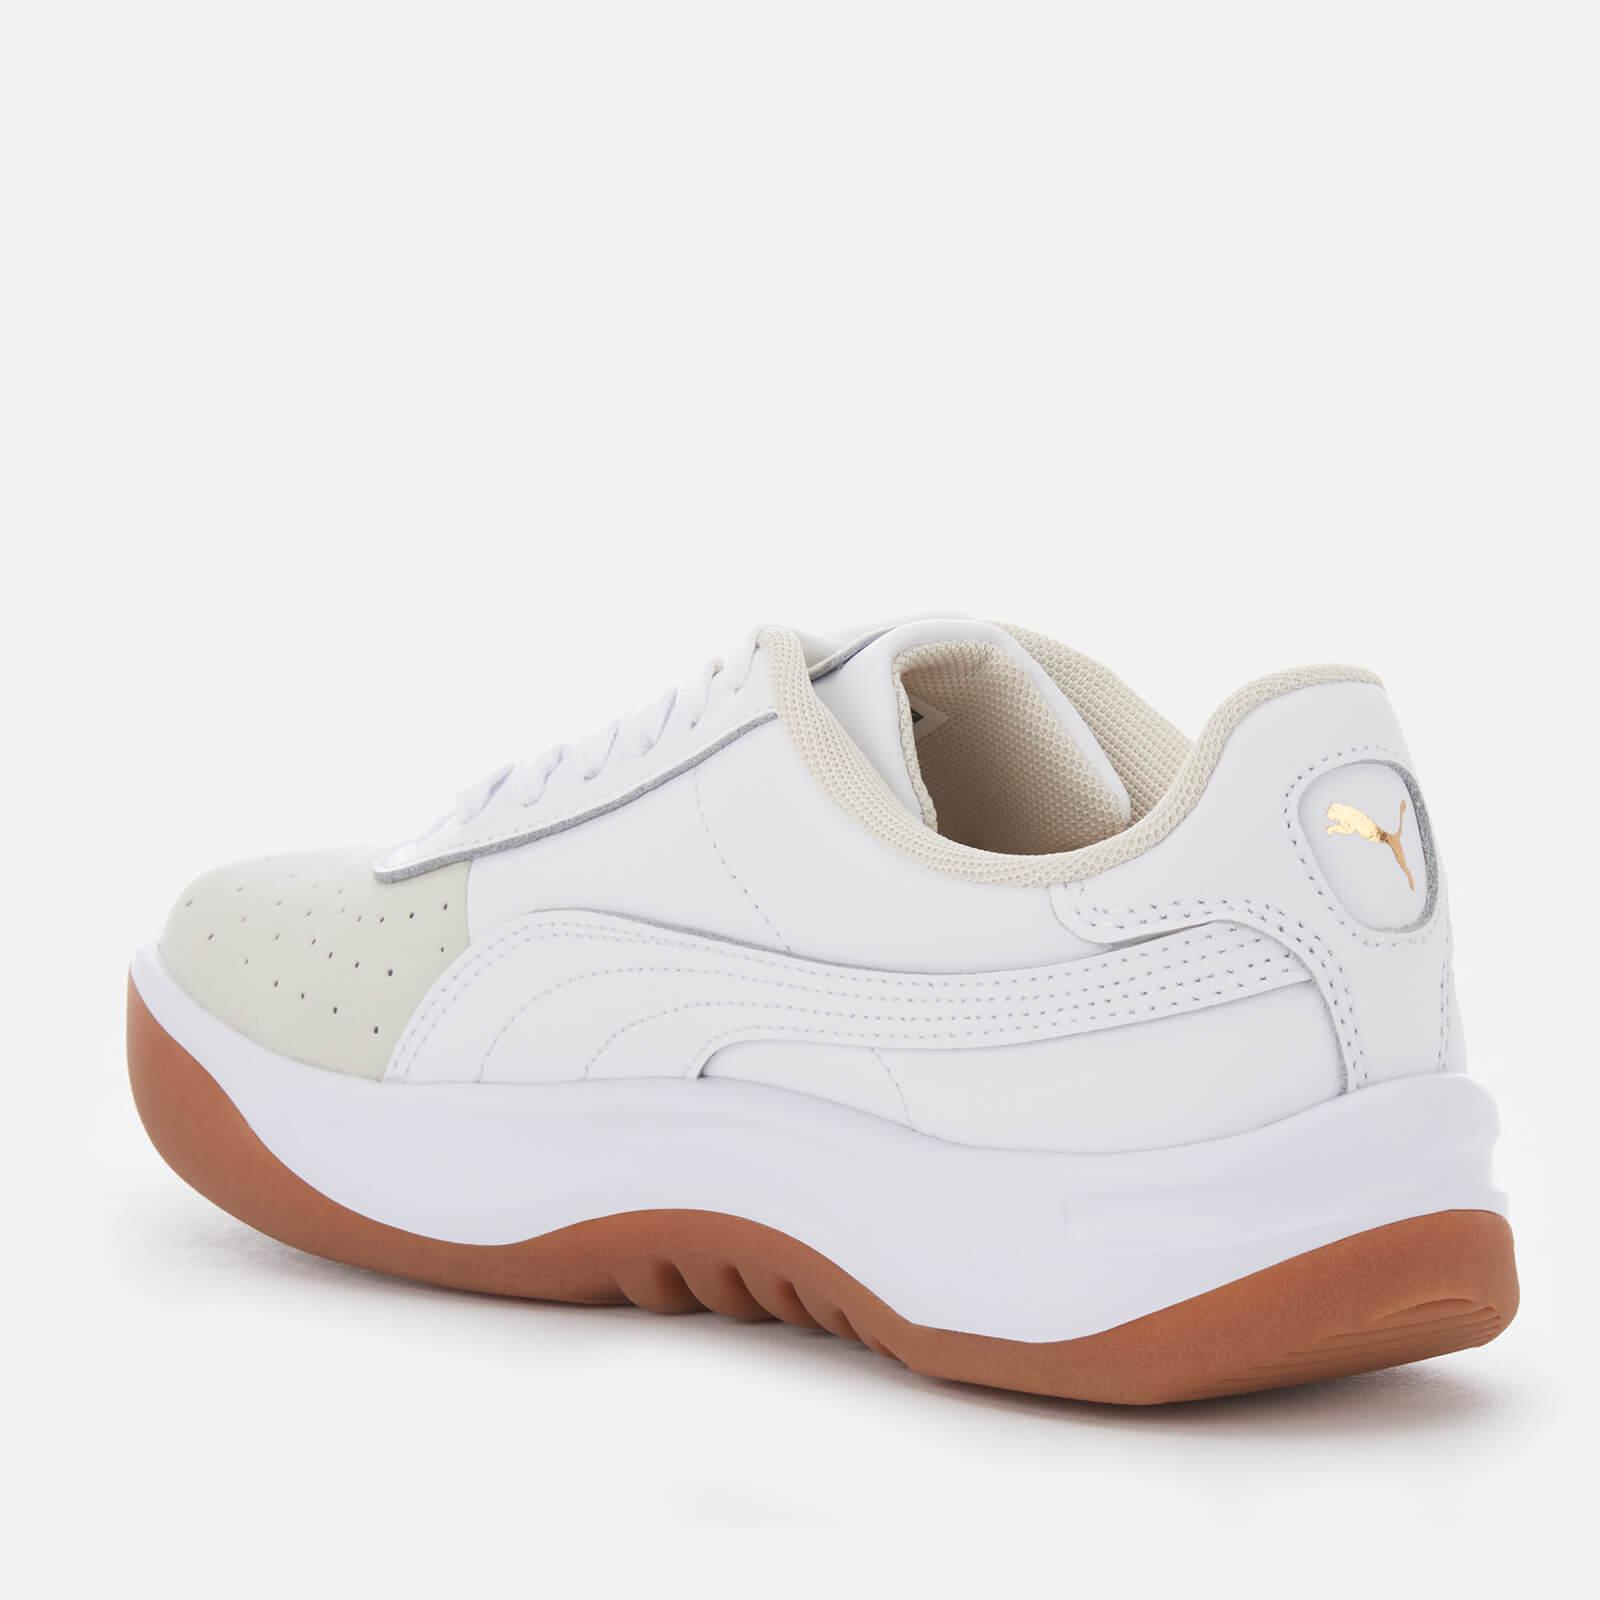 880ec027281 PUMA - White California Exotic Trainers - Lyst. View fullscreen